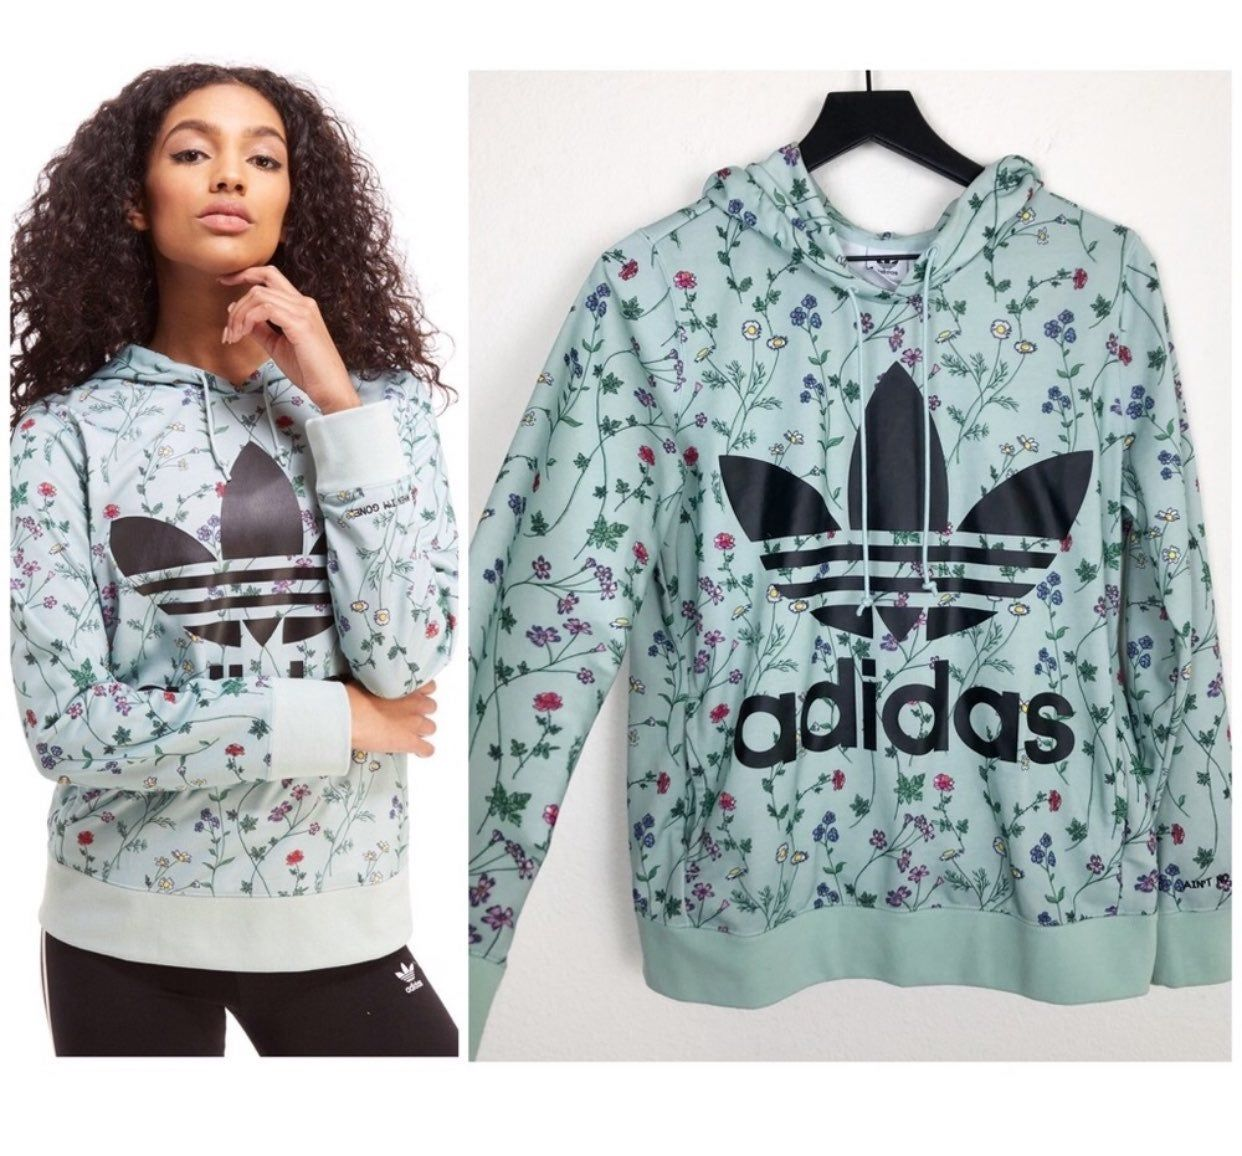 Sz S Color Mint Green Yellow Pink Blue White Desc Adidas Hoodie In A Mint Green Color With Small Flo Floral Print Hoodie Hoodie Fashion Hoodies Womens [ 1156 x 1242 Pixel ]